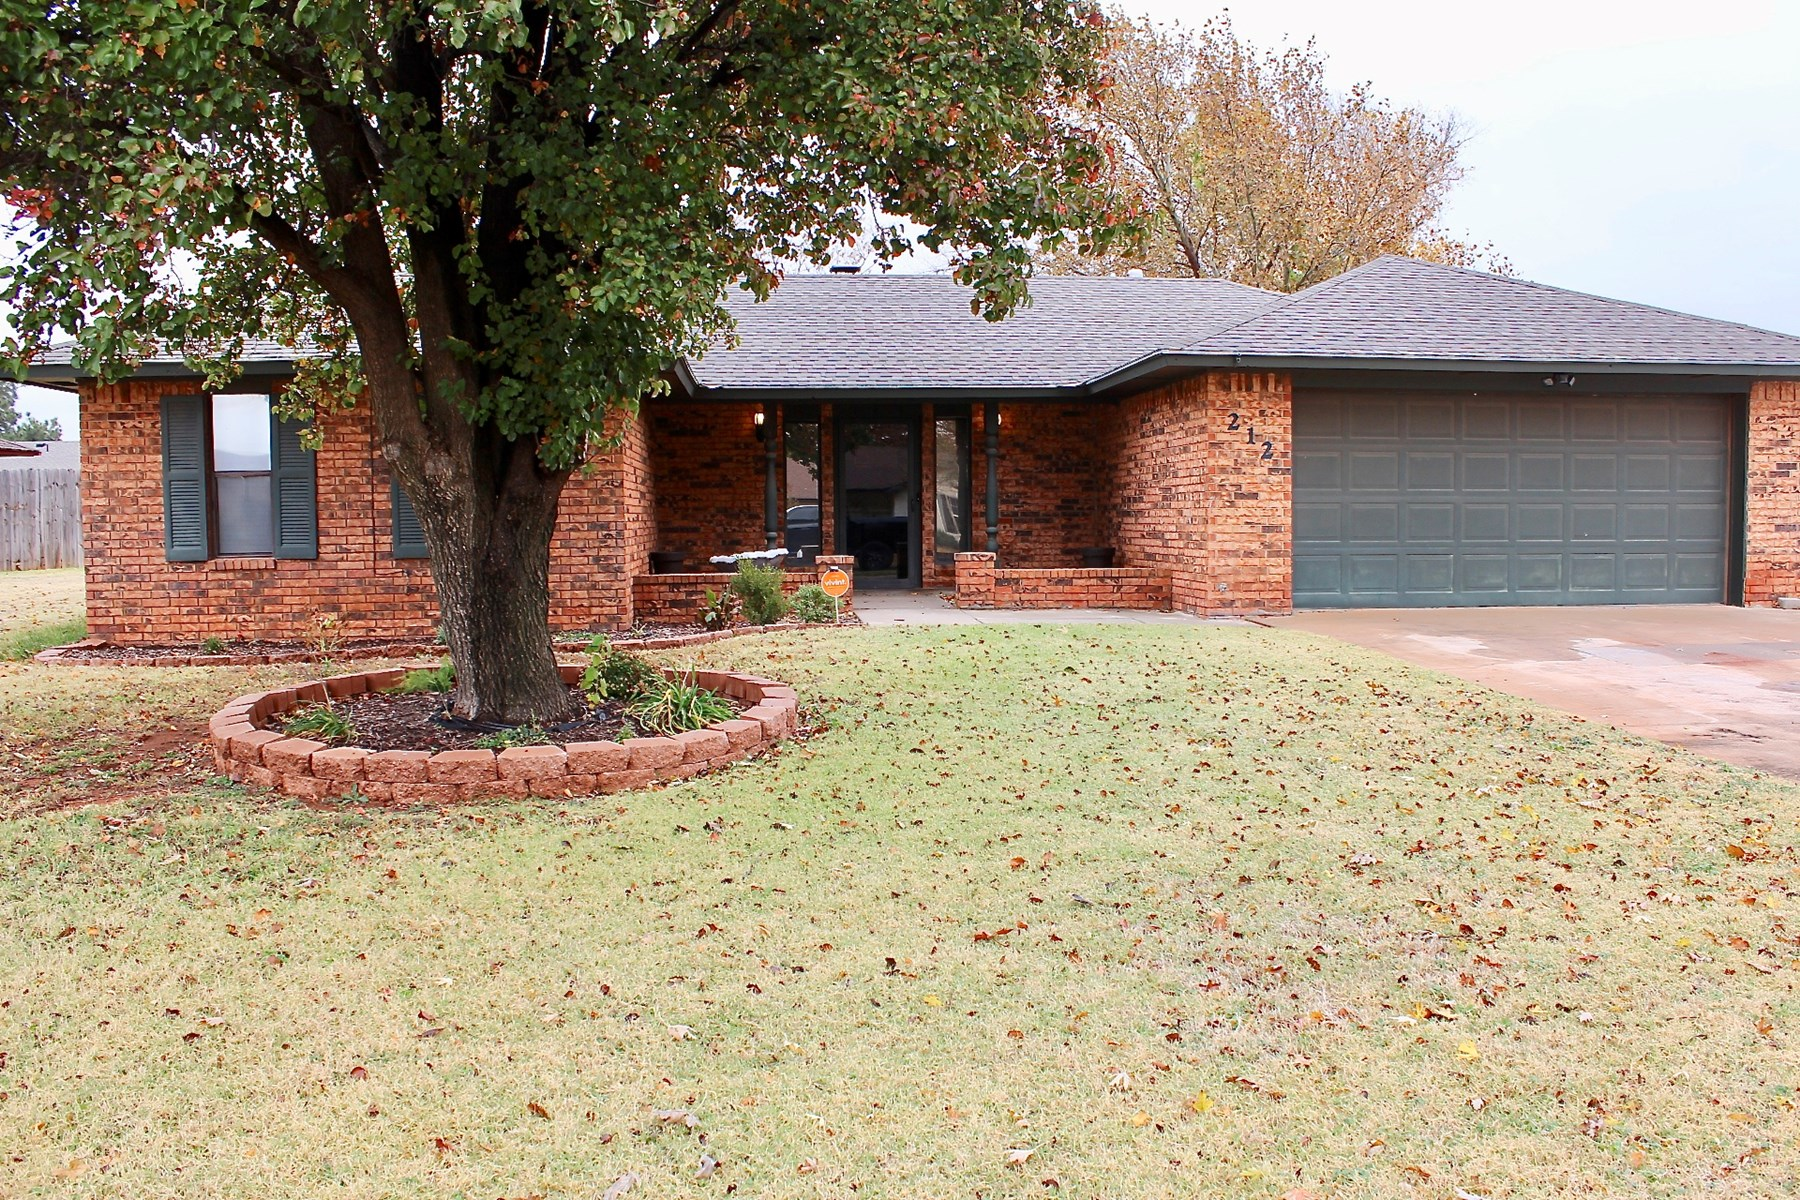 3 BED HOME W/ OFFICE & UPDATED KITCHEN FOR SALE IN ELK CITY